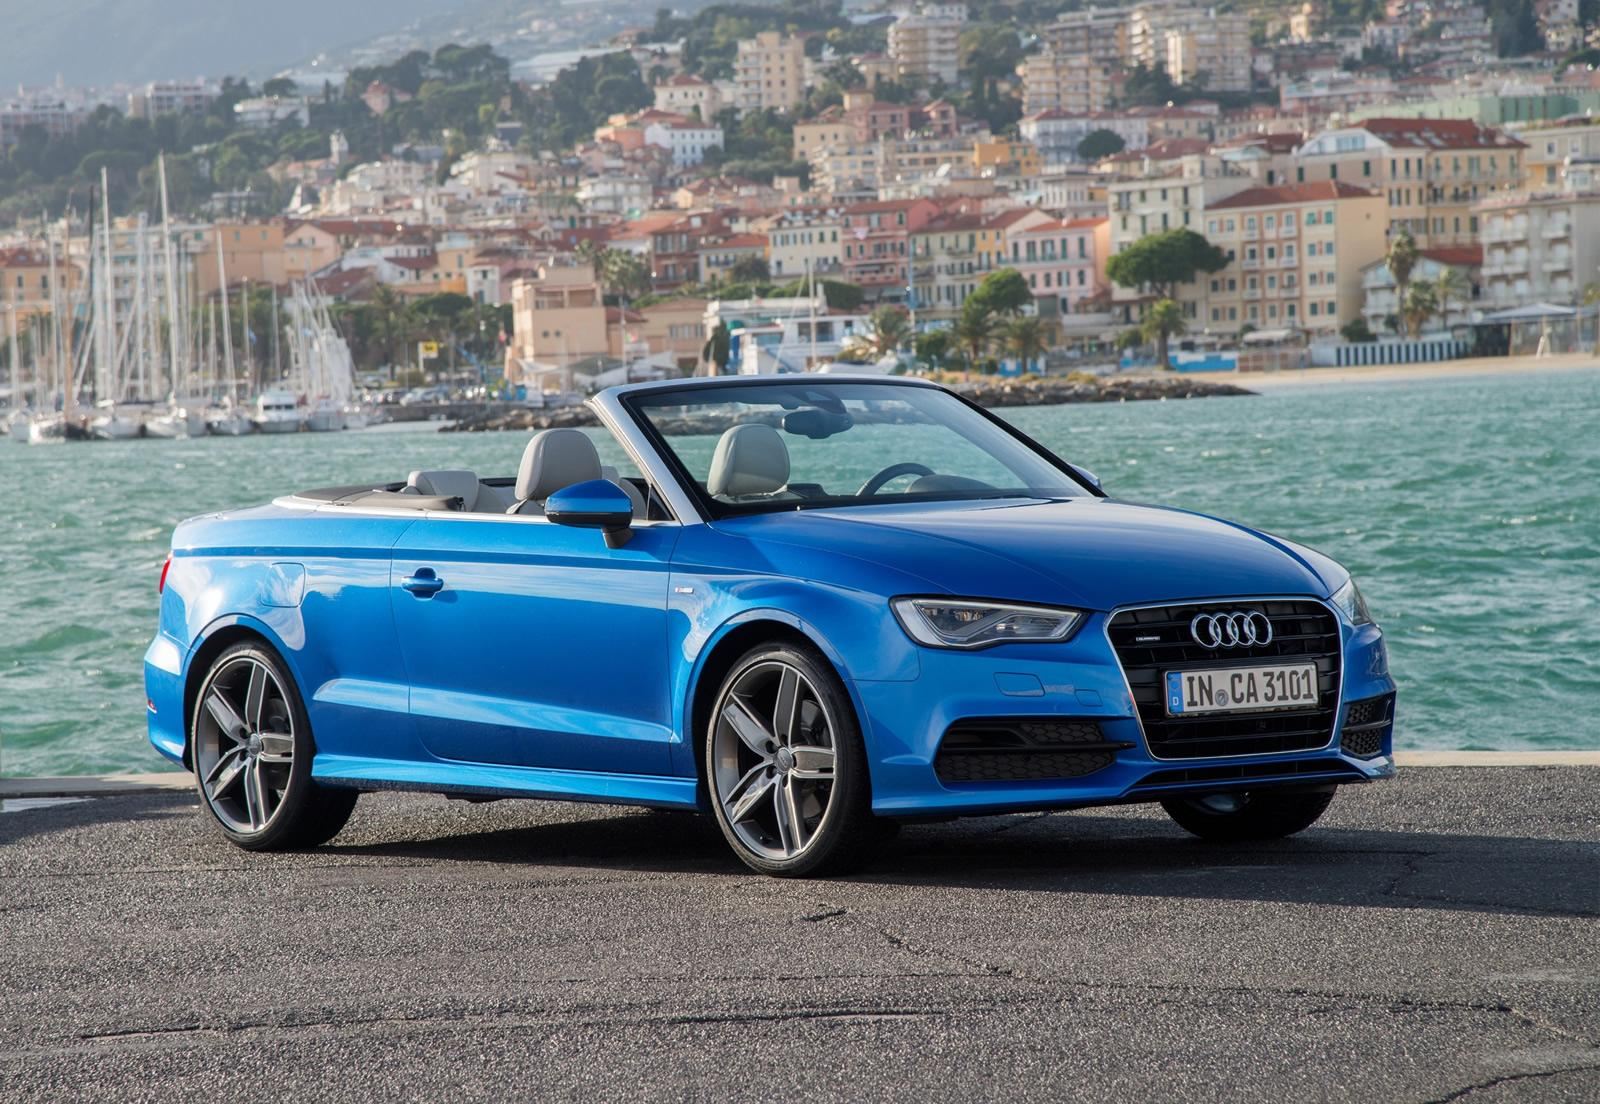 2014 audi a3 cabriolet uk pricing announced autoevolution. Black Bedroom Furniture Sets. Home Design Ideas